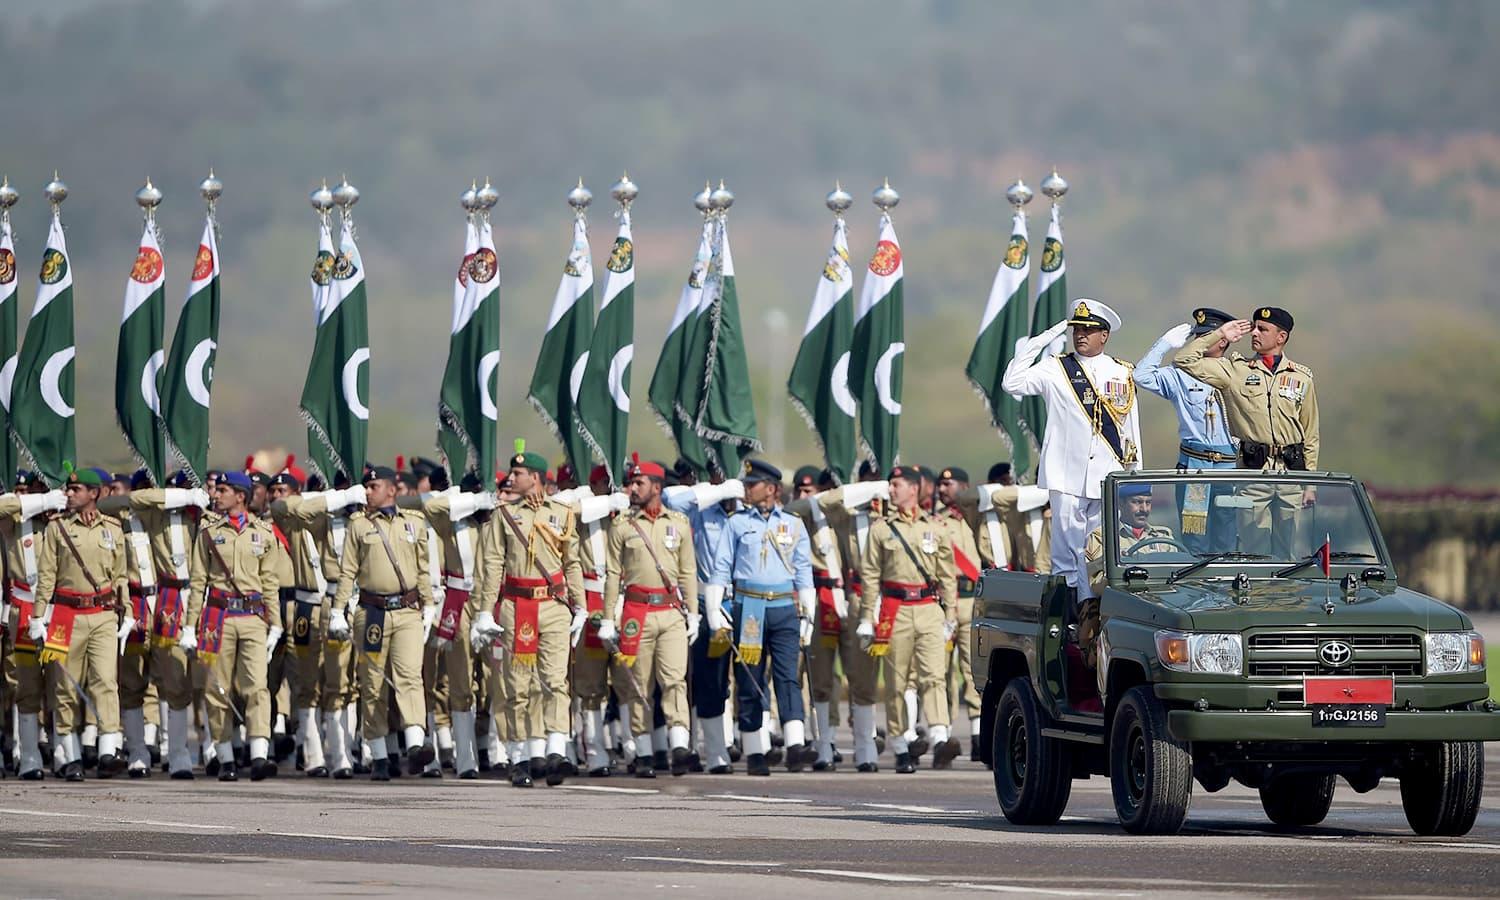 Armed forces soldiers march past during the Pakistan Day military parade in Islamabad. ─AFP